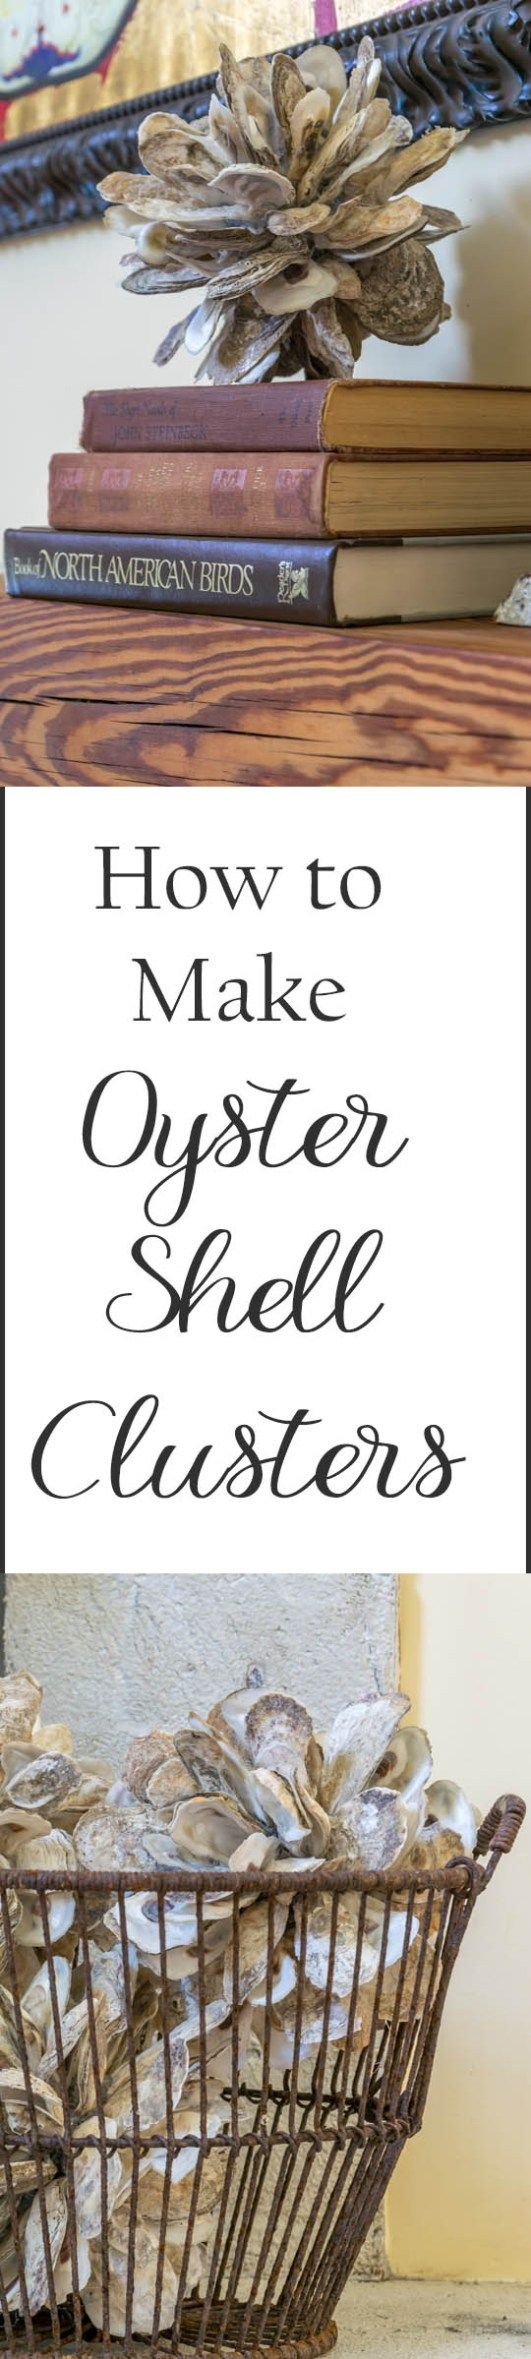 Diy oyster shell clusters ideas diy and crafts and decor Diy home decor with shells